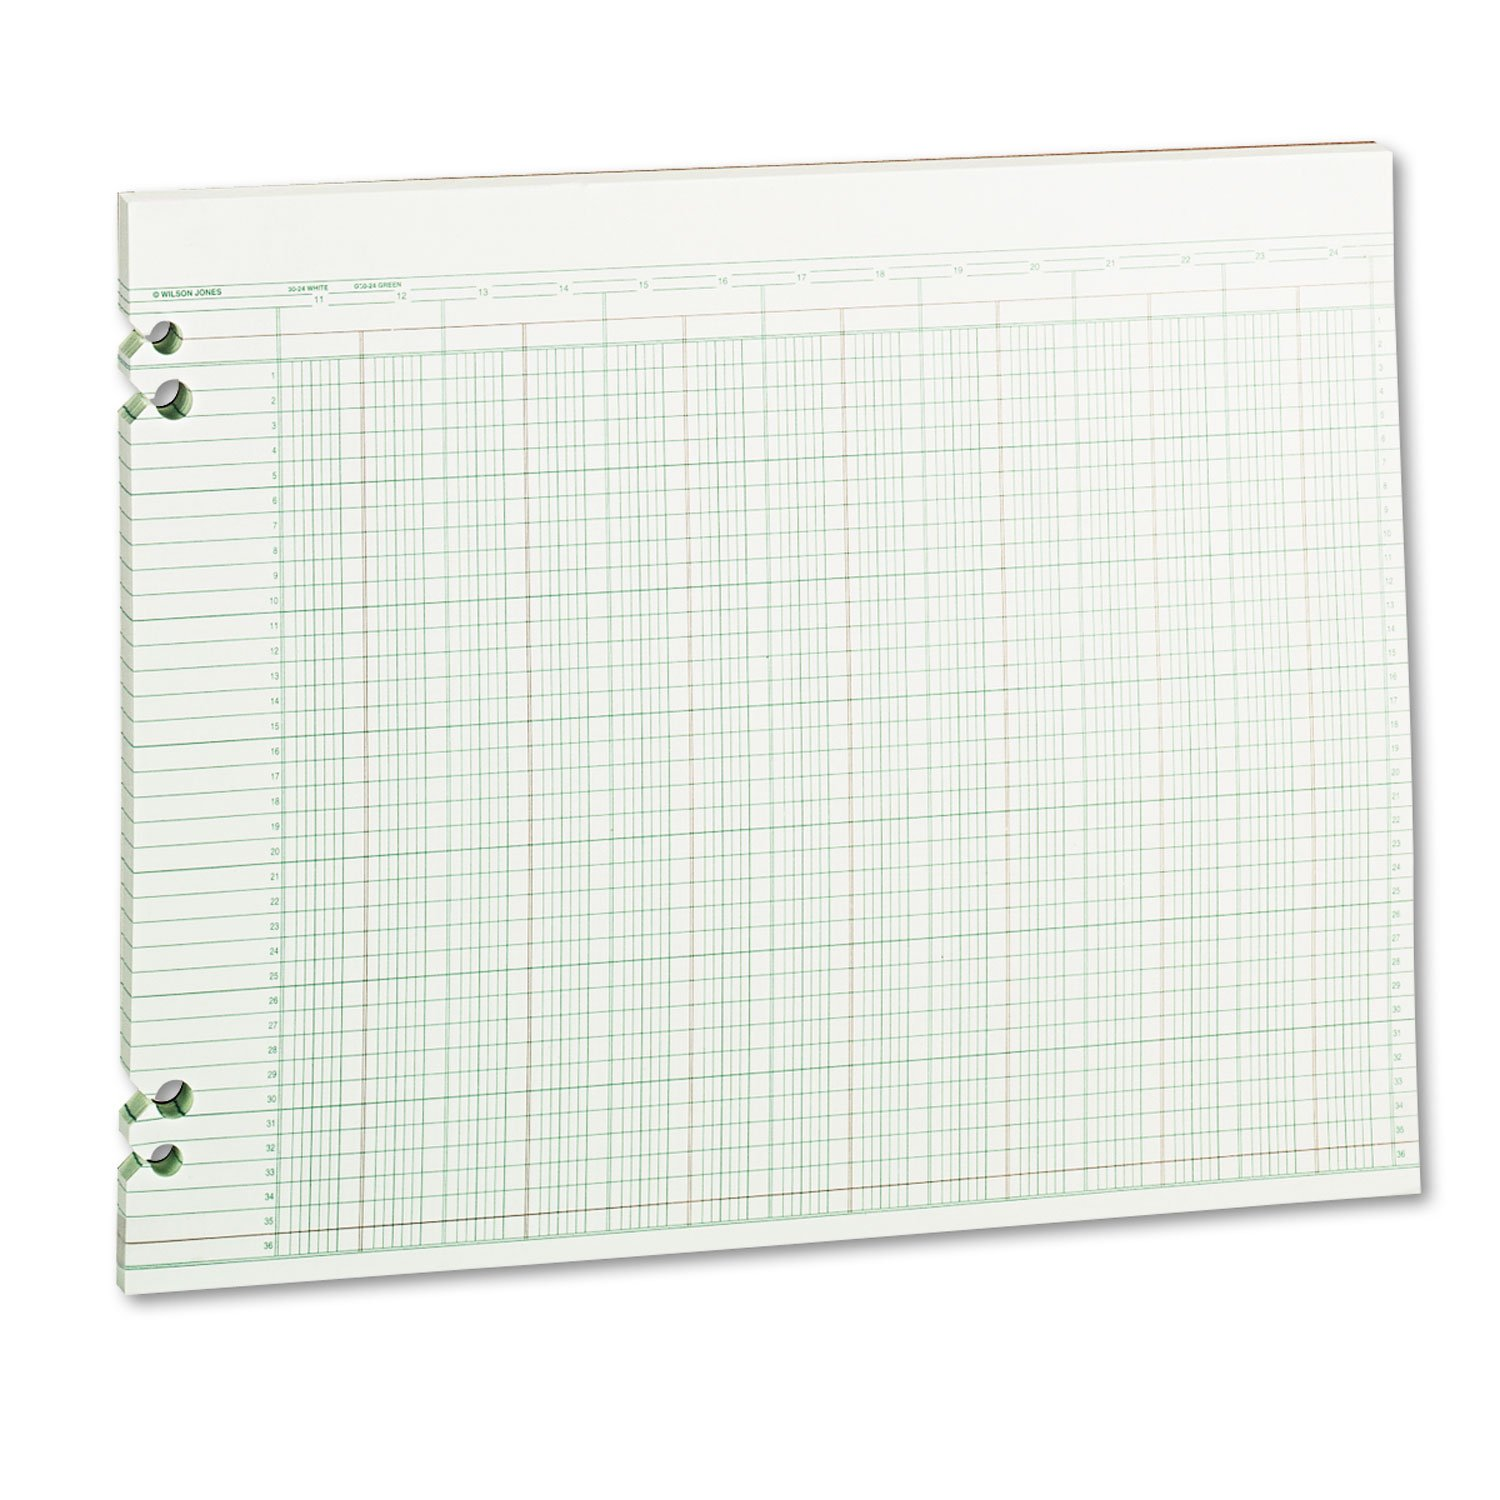 WLJG3024 United STATIONERS (OP) Accounting Sheets 24 Columns 11X14 100SHT GRE 1/ by Unknown